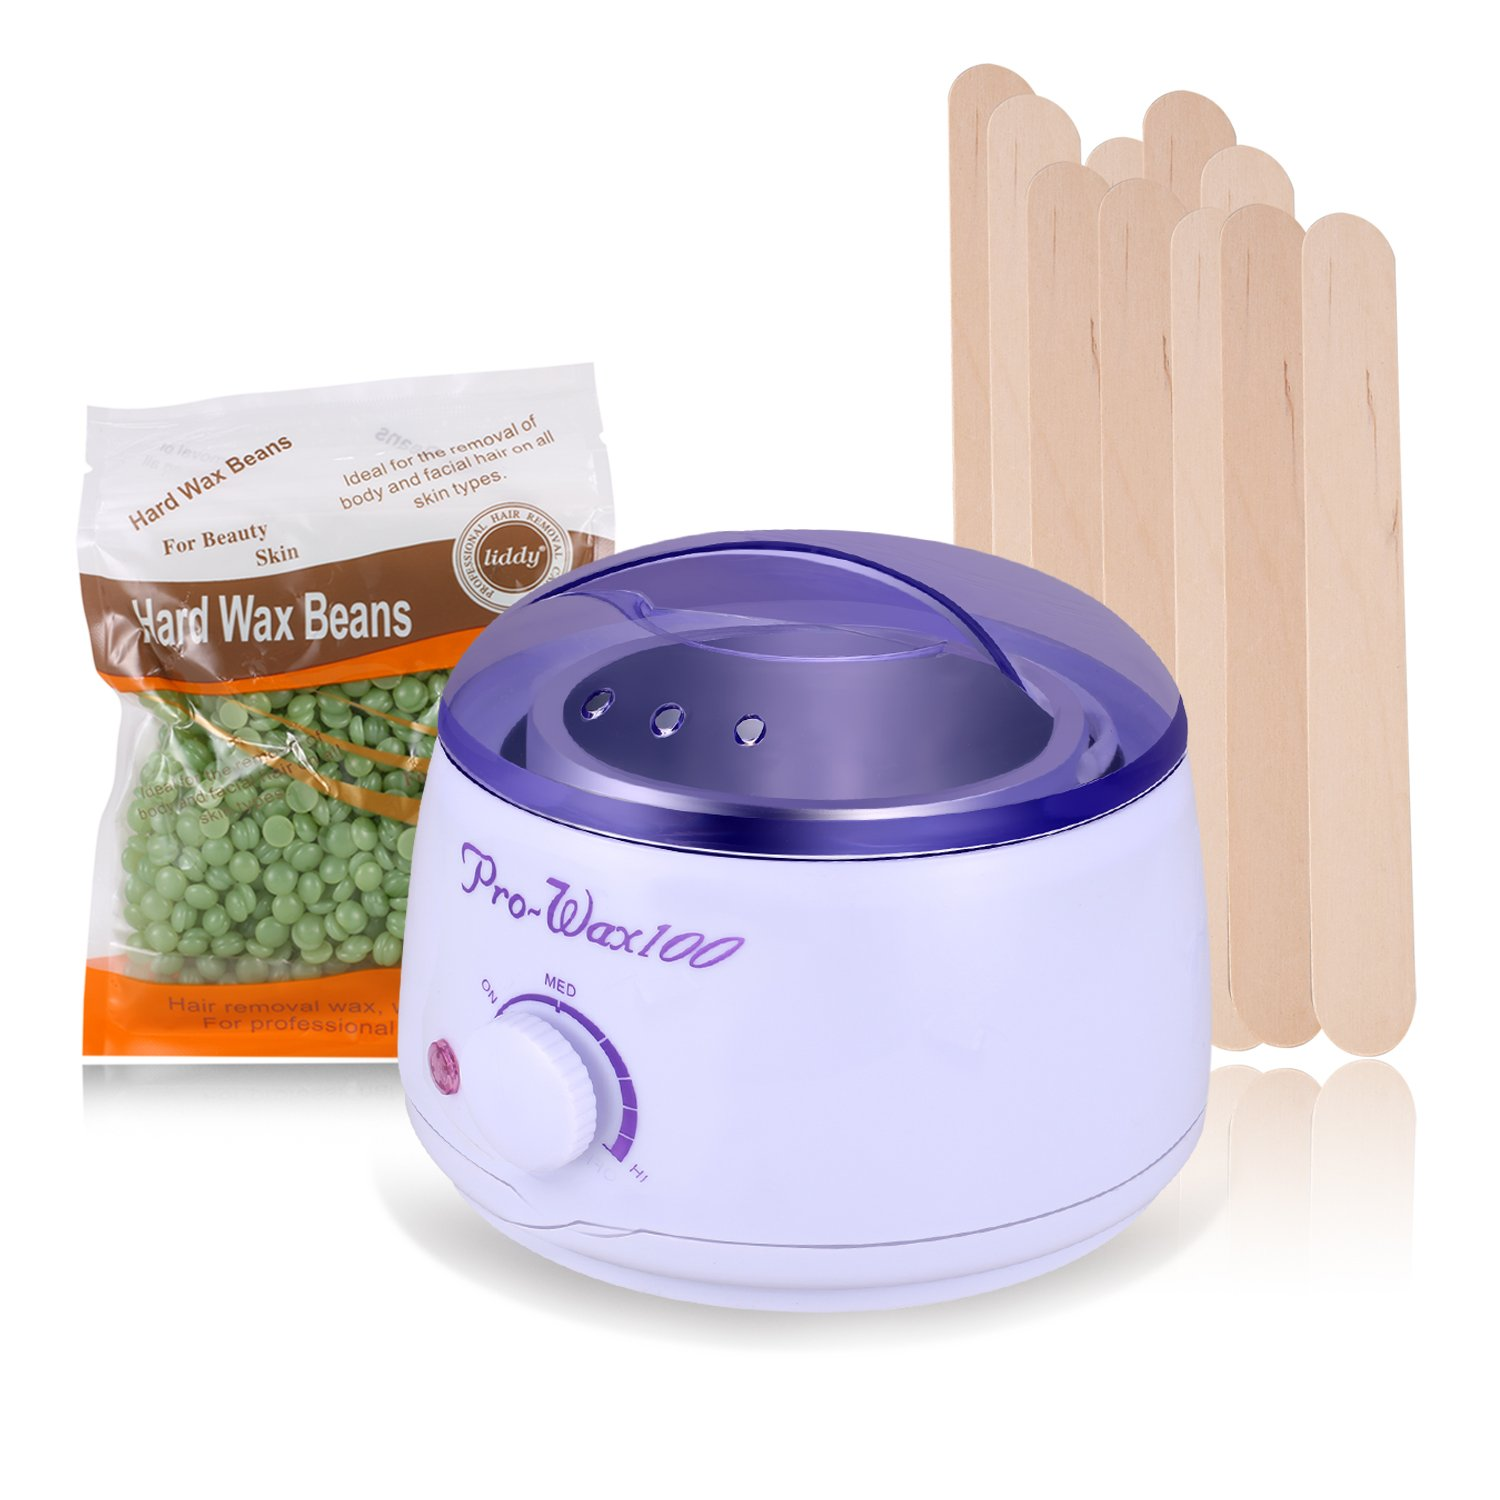 Guisee Wax Warmer, Electric Remover Waxing Kit with Hard Wax Beans for Unwanted Hair Remove, Special Designed for All Parts, Suitable for Both Women and Men